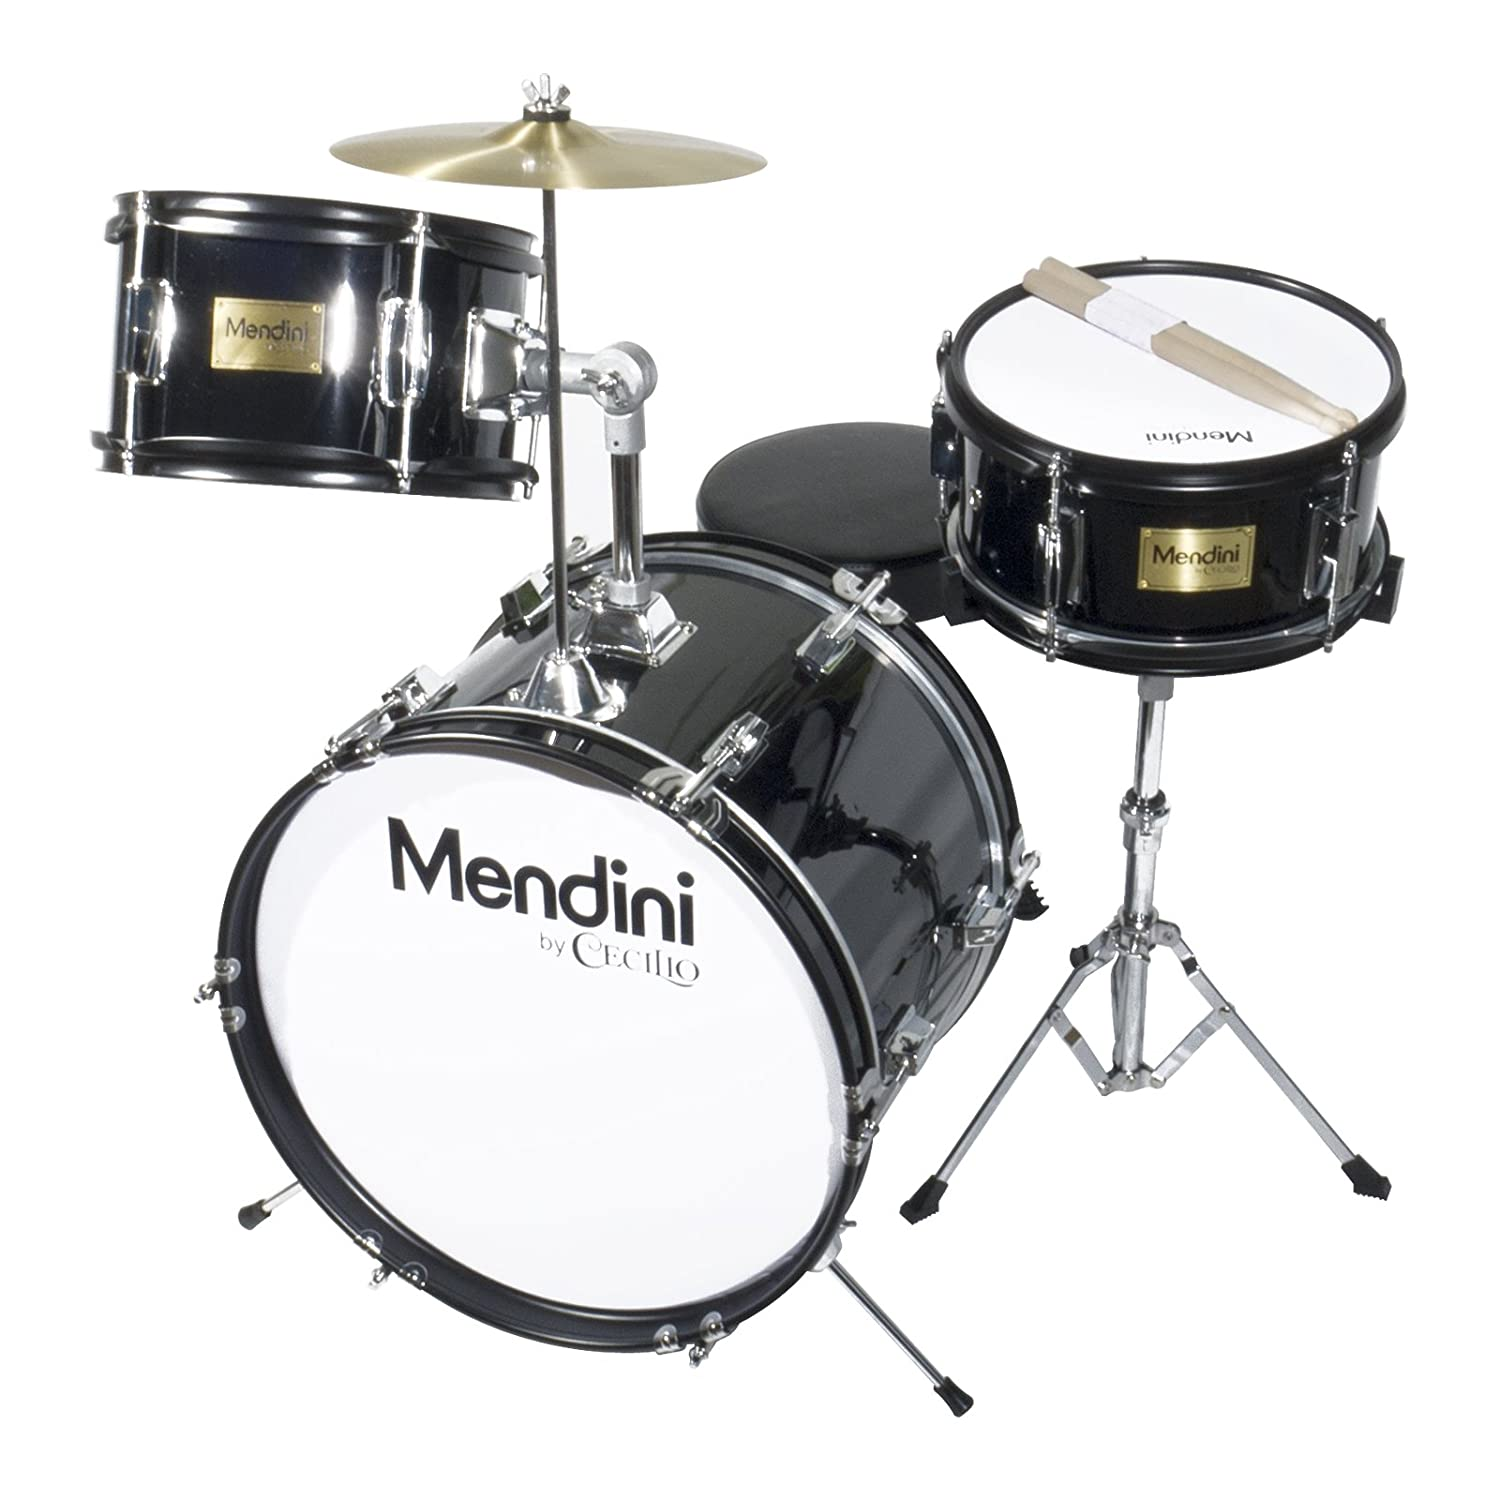 Mendini 3-Piece 16-Inch Junior Drum Set, Metallic Black - MJDS-3-BK Cecilio Musical Instruments